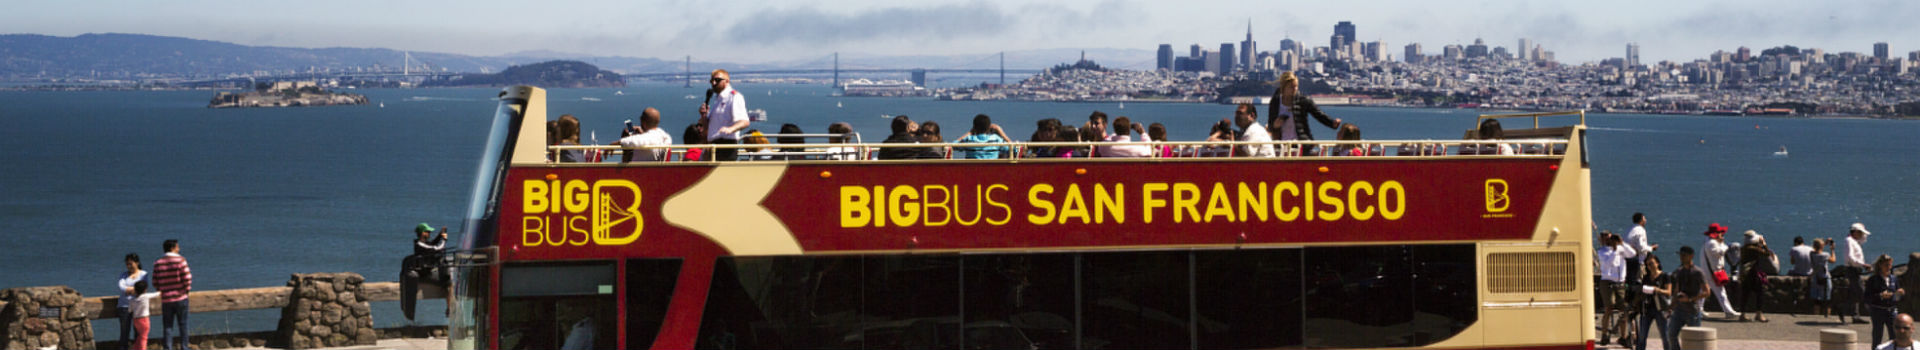 big_bus_golden_gate_bridge_350